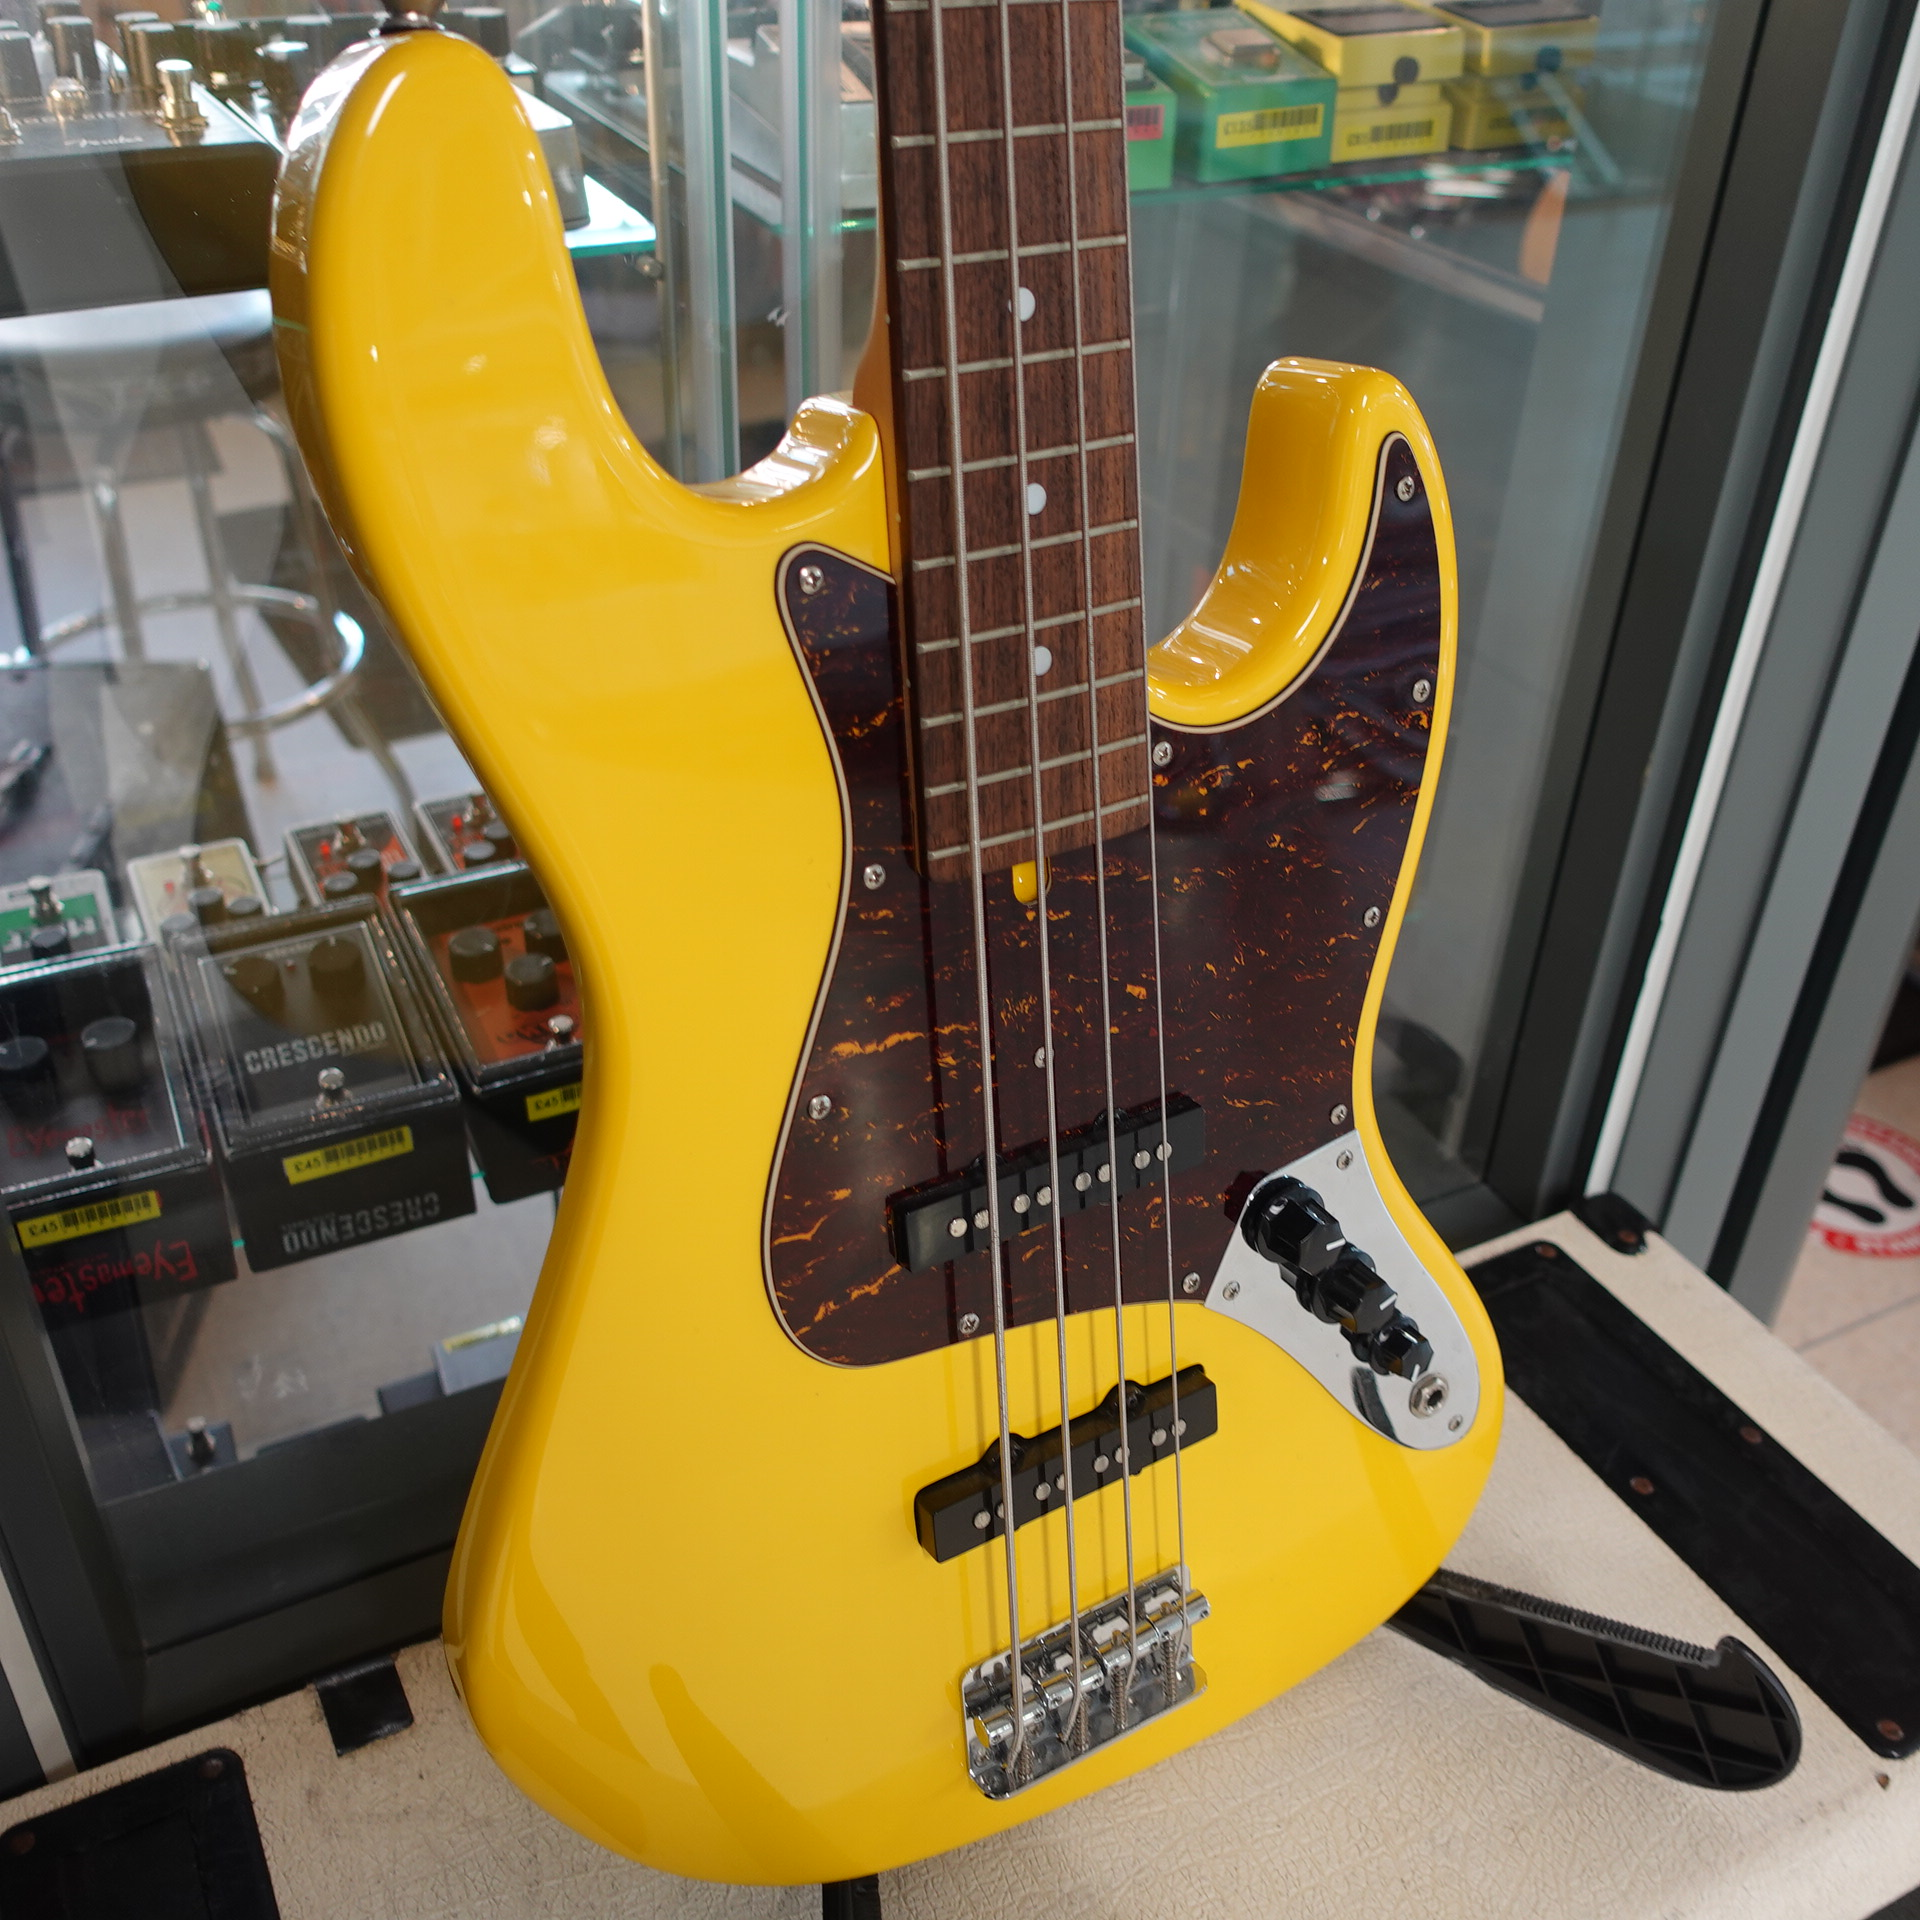 Bacchaus YLW Jazz Bass Yellow